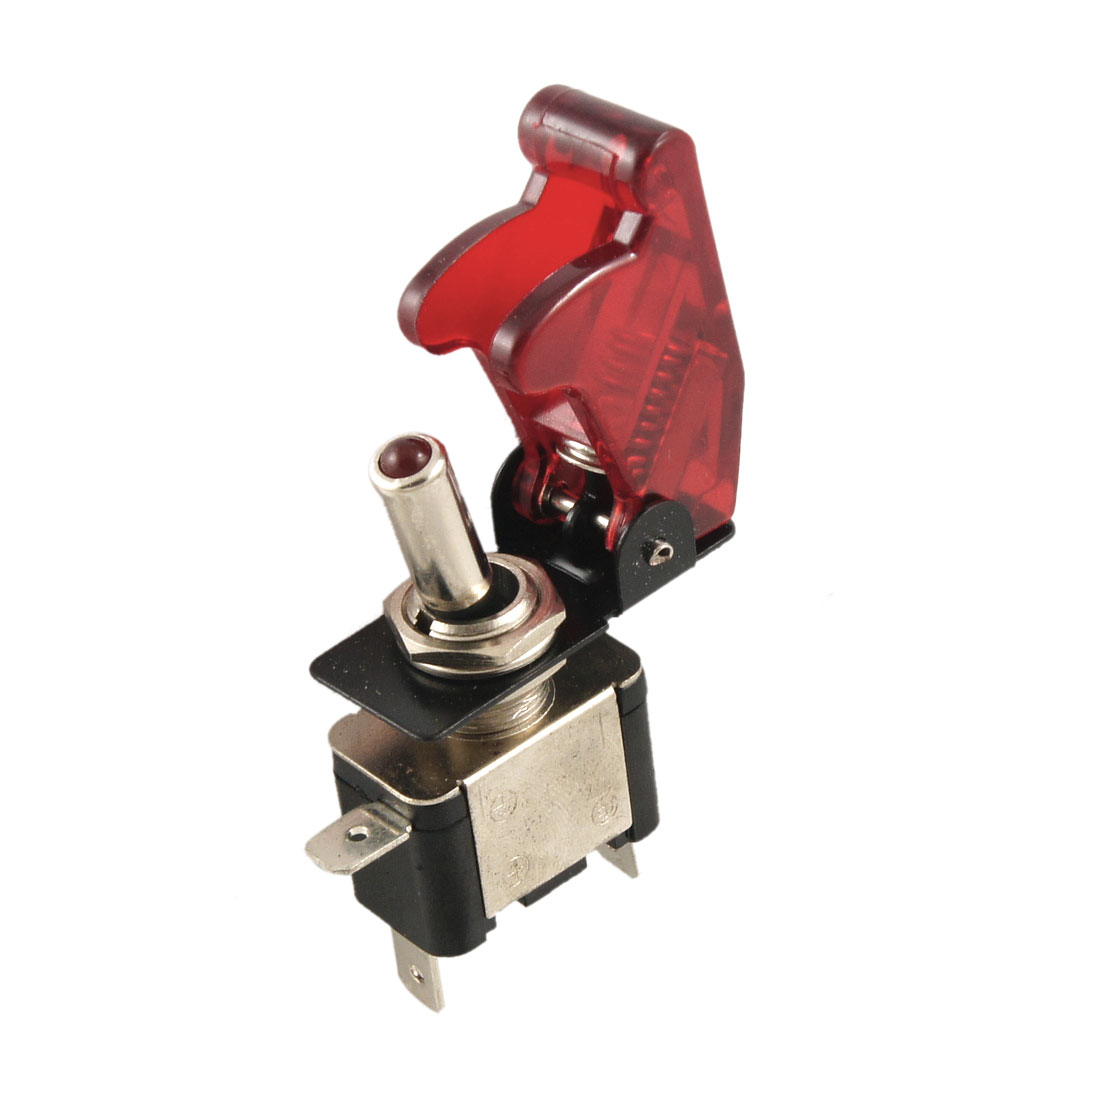 DC 12V On Off Racing Car Illuminated Toggle Switch + Red Cover